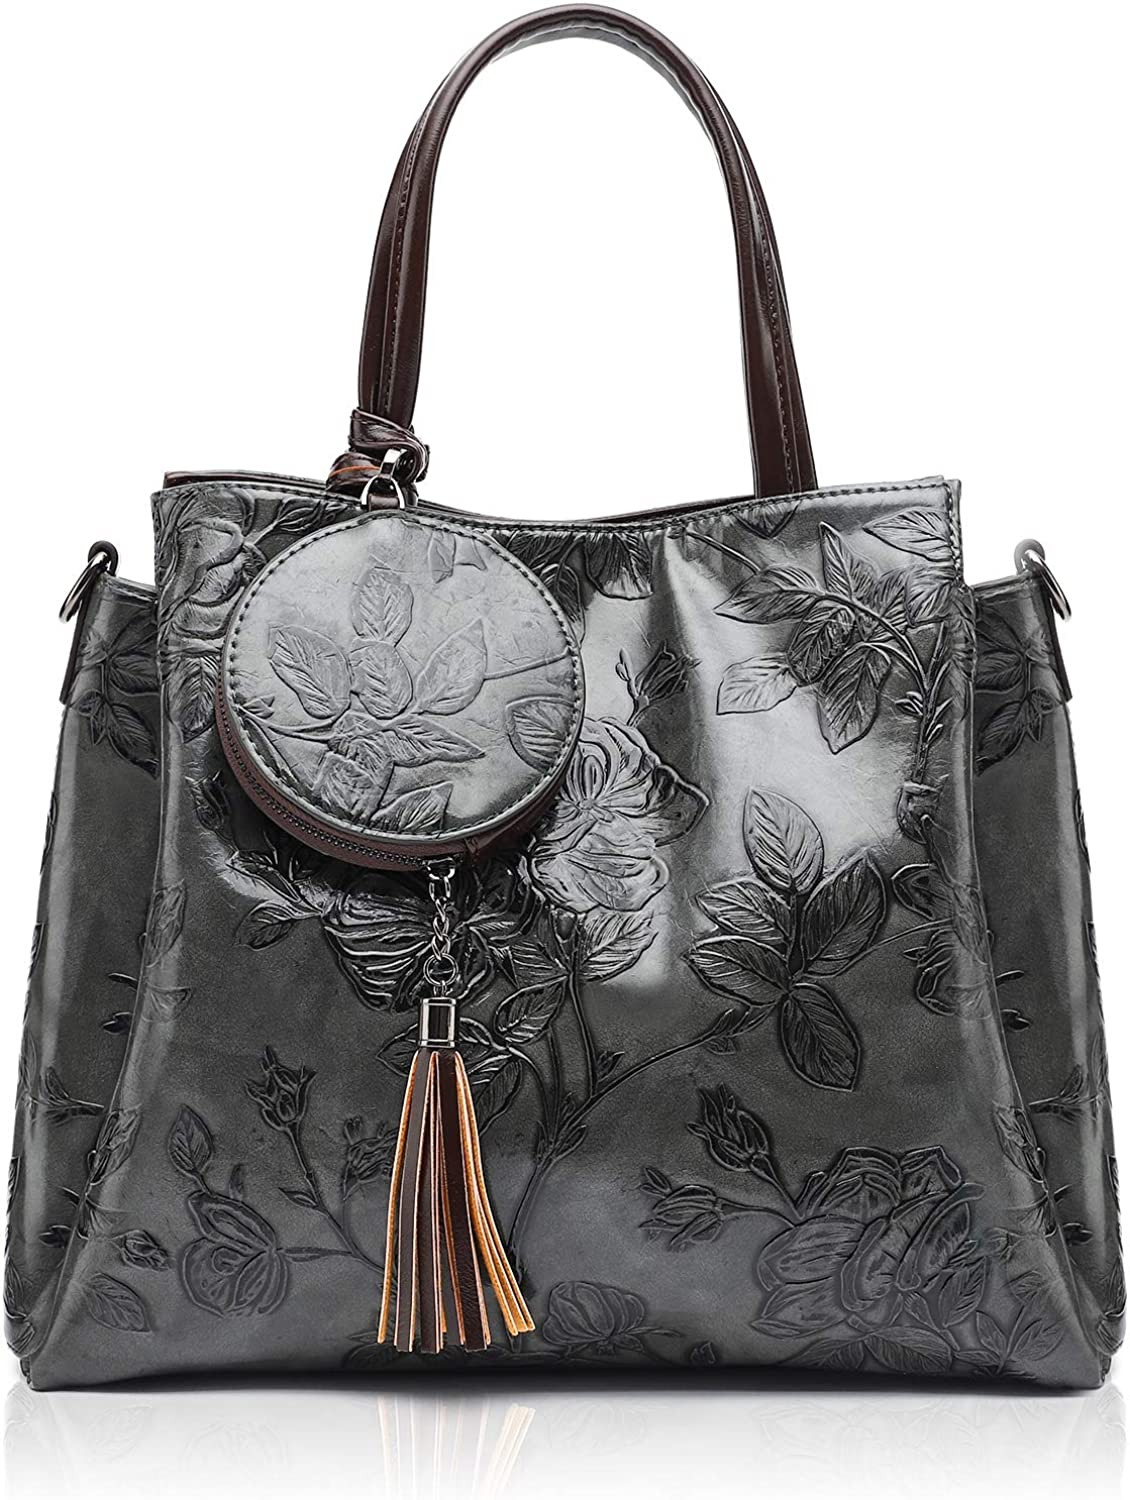 OFFicial shop MEITRUE Women Selling and selling Satchel Handbags and Purses Foral Shoulde Embossed